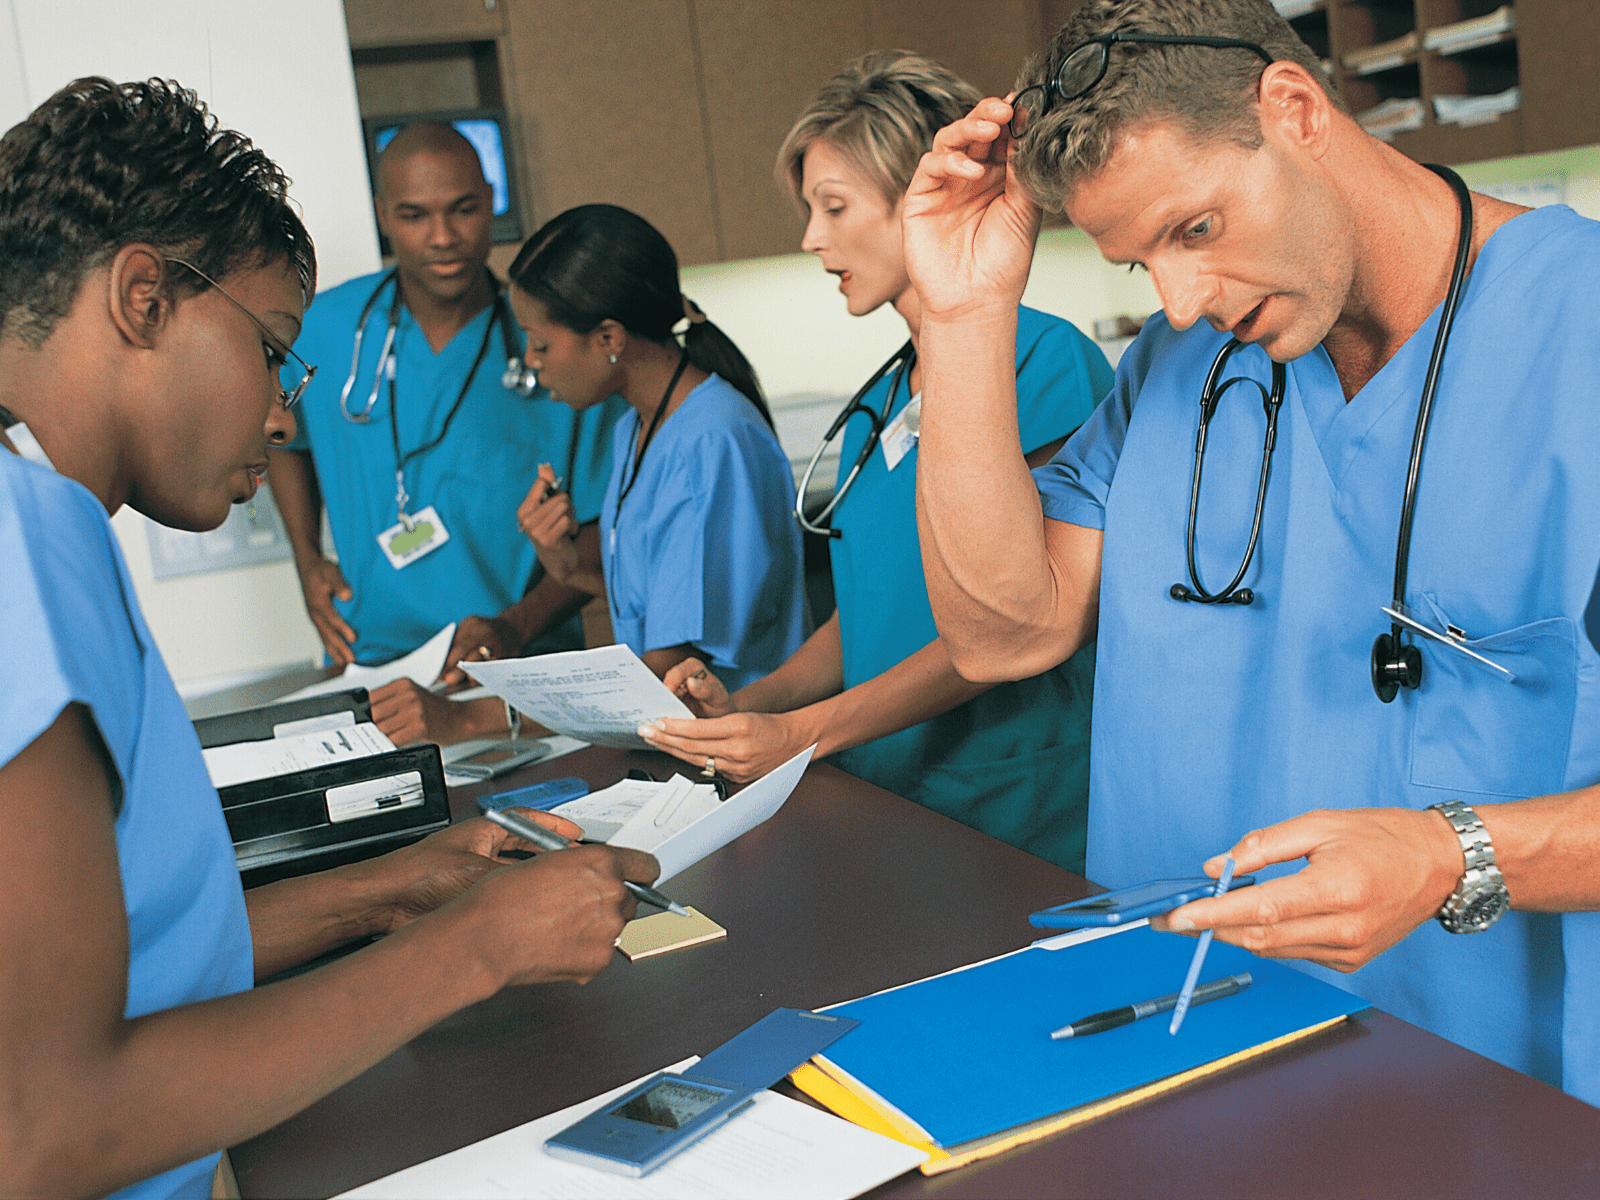 Five doctors in blue scrubs standing around a table with paperwork